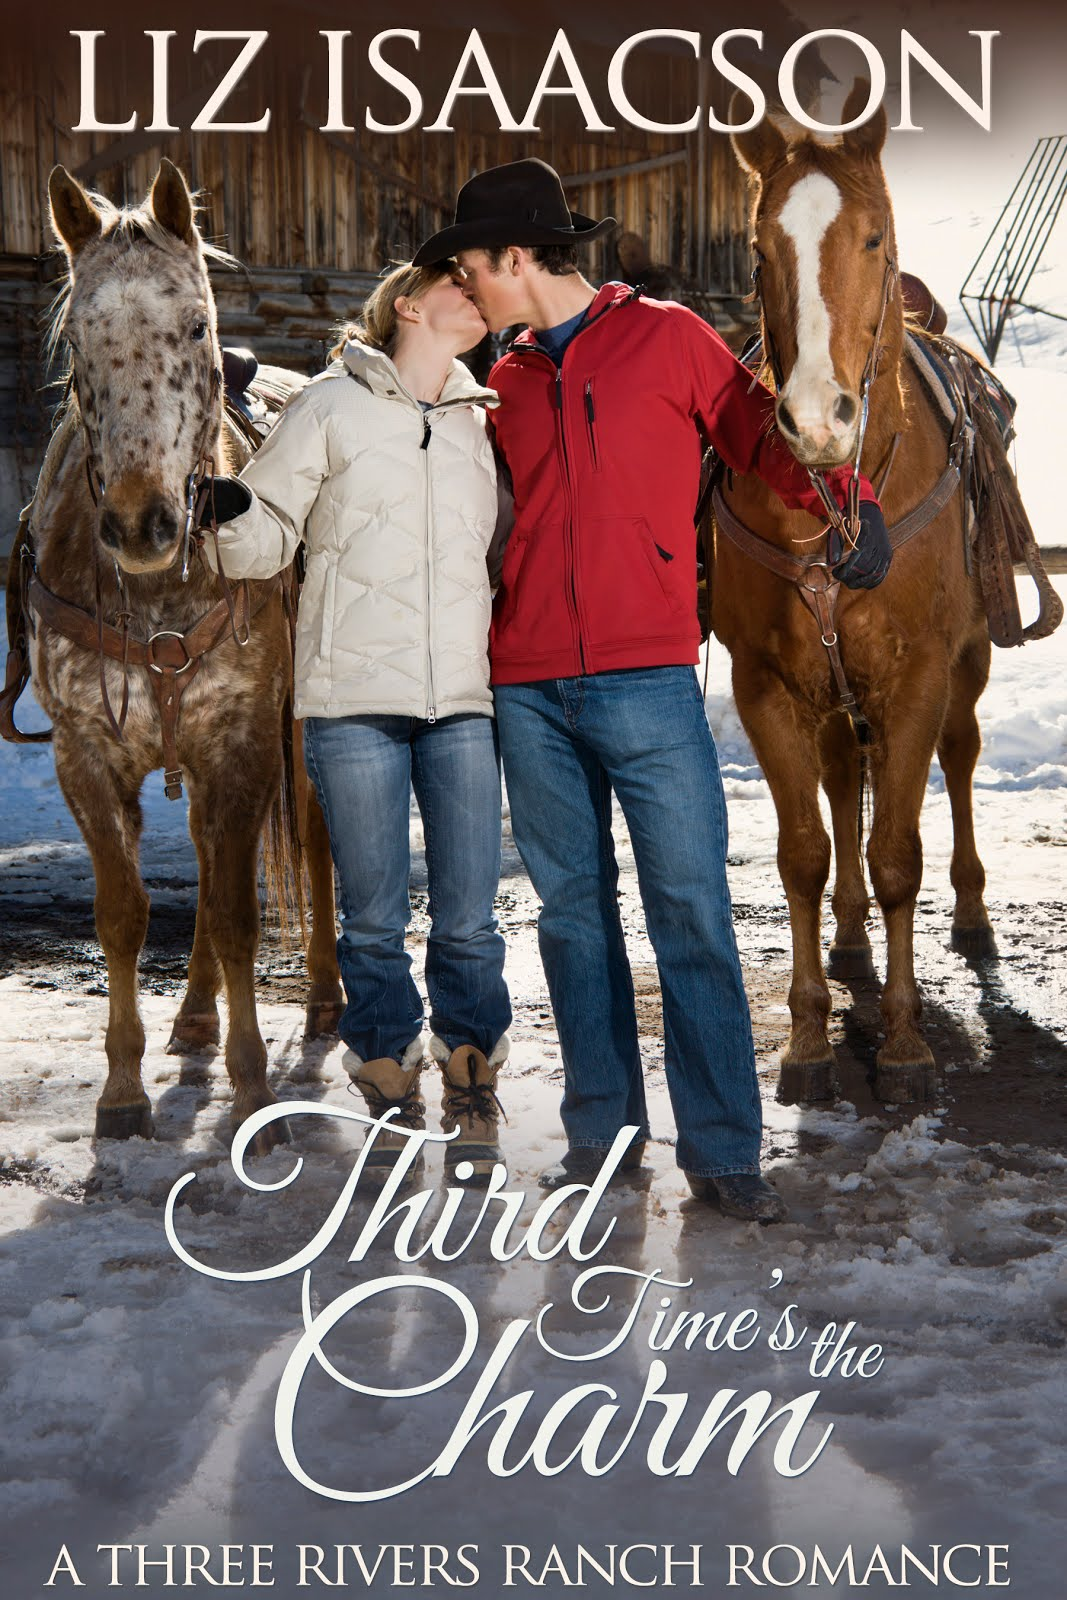 Get the whole Three Rivers Ranch Romance series!